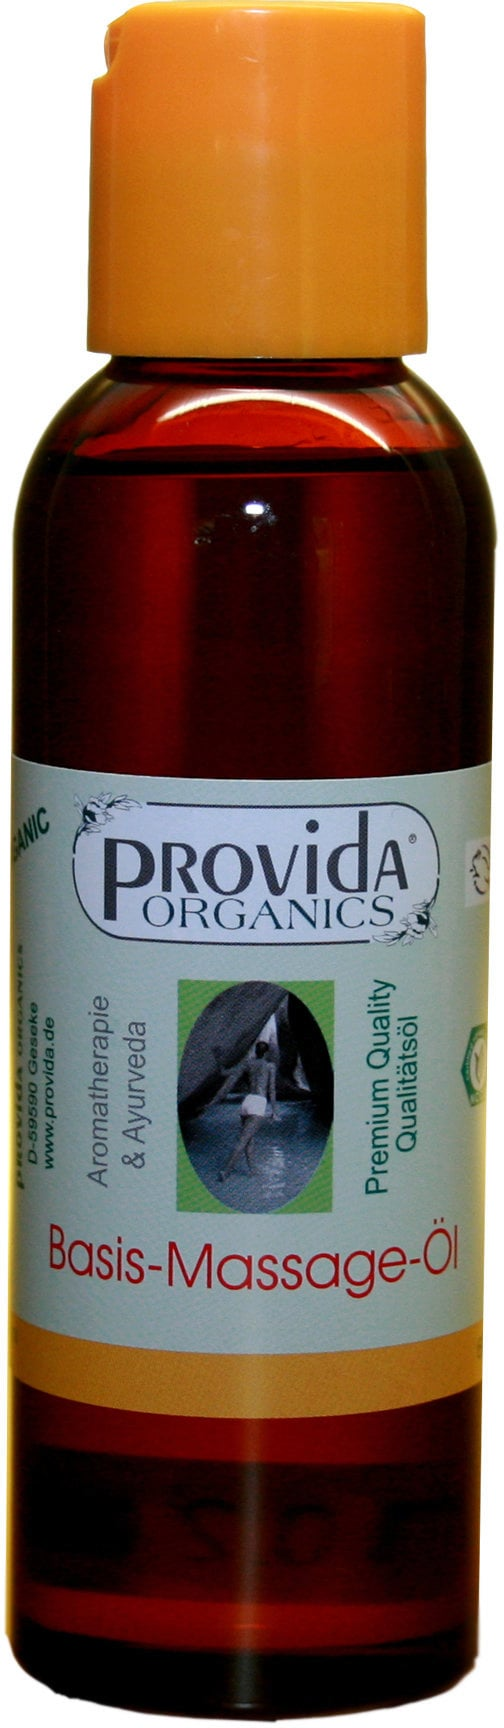 Provida Organics Base Massage Oil, certified organic